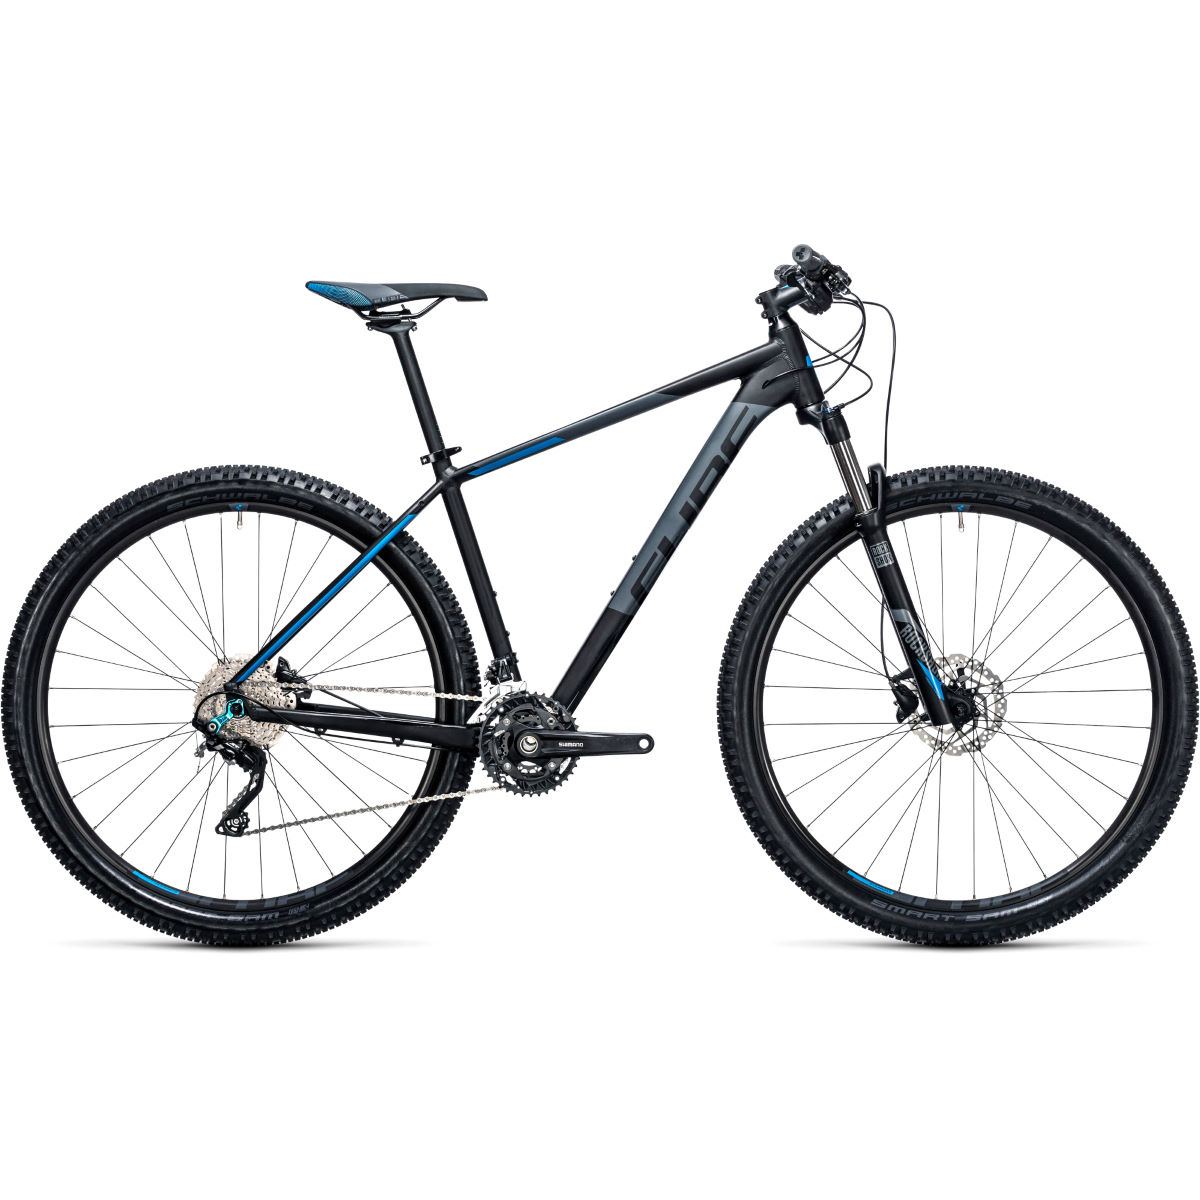 VTT semi-rigide Cube Attention 27,5 pouces (2017) - 18'' Stock Bike